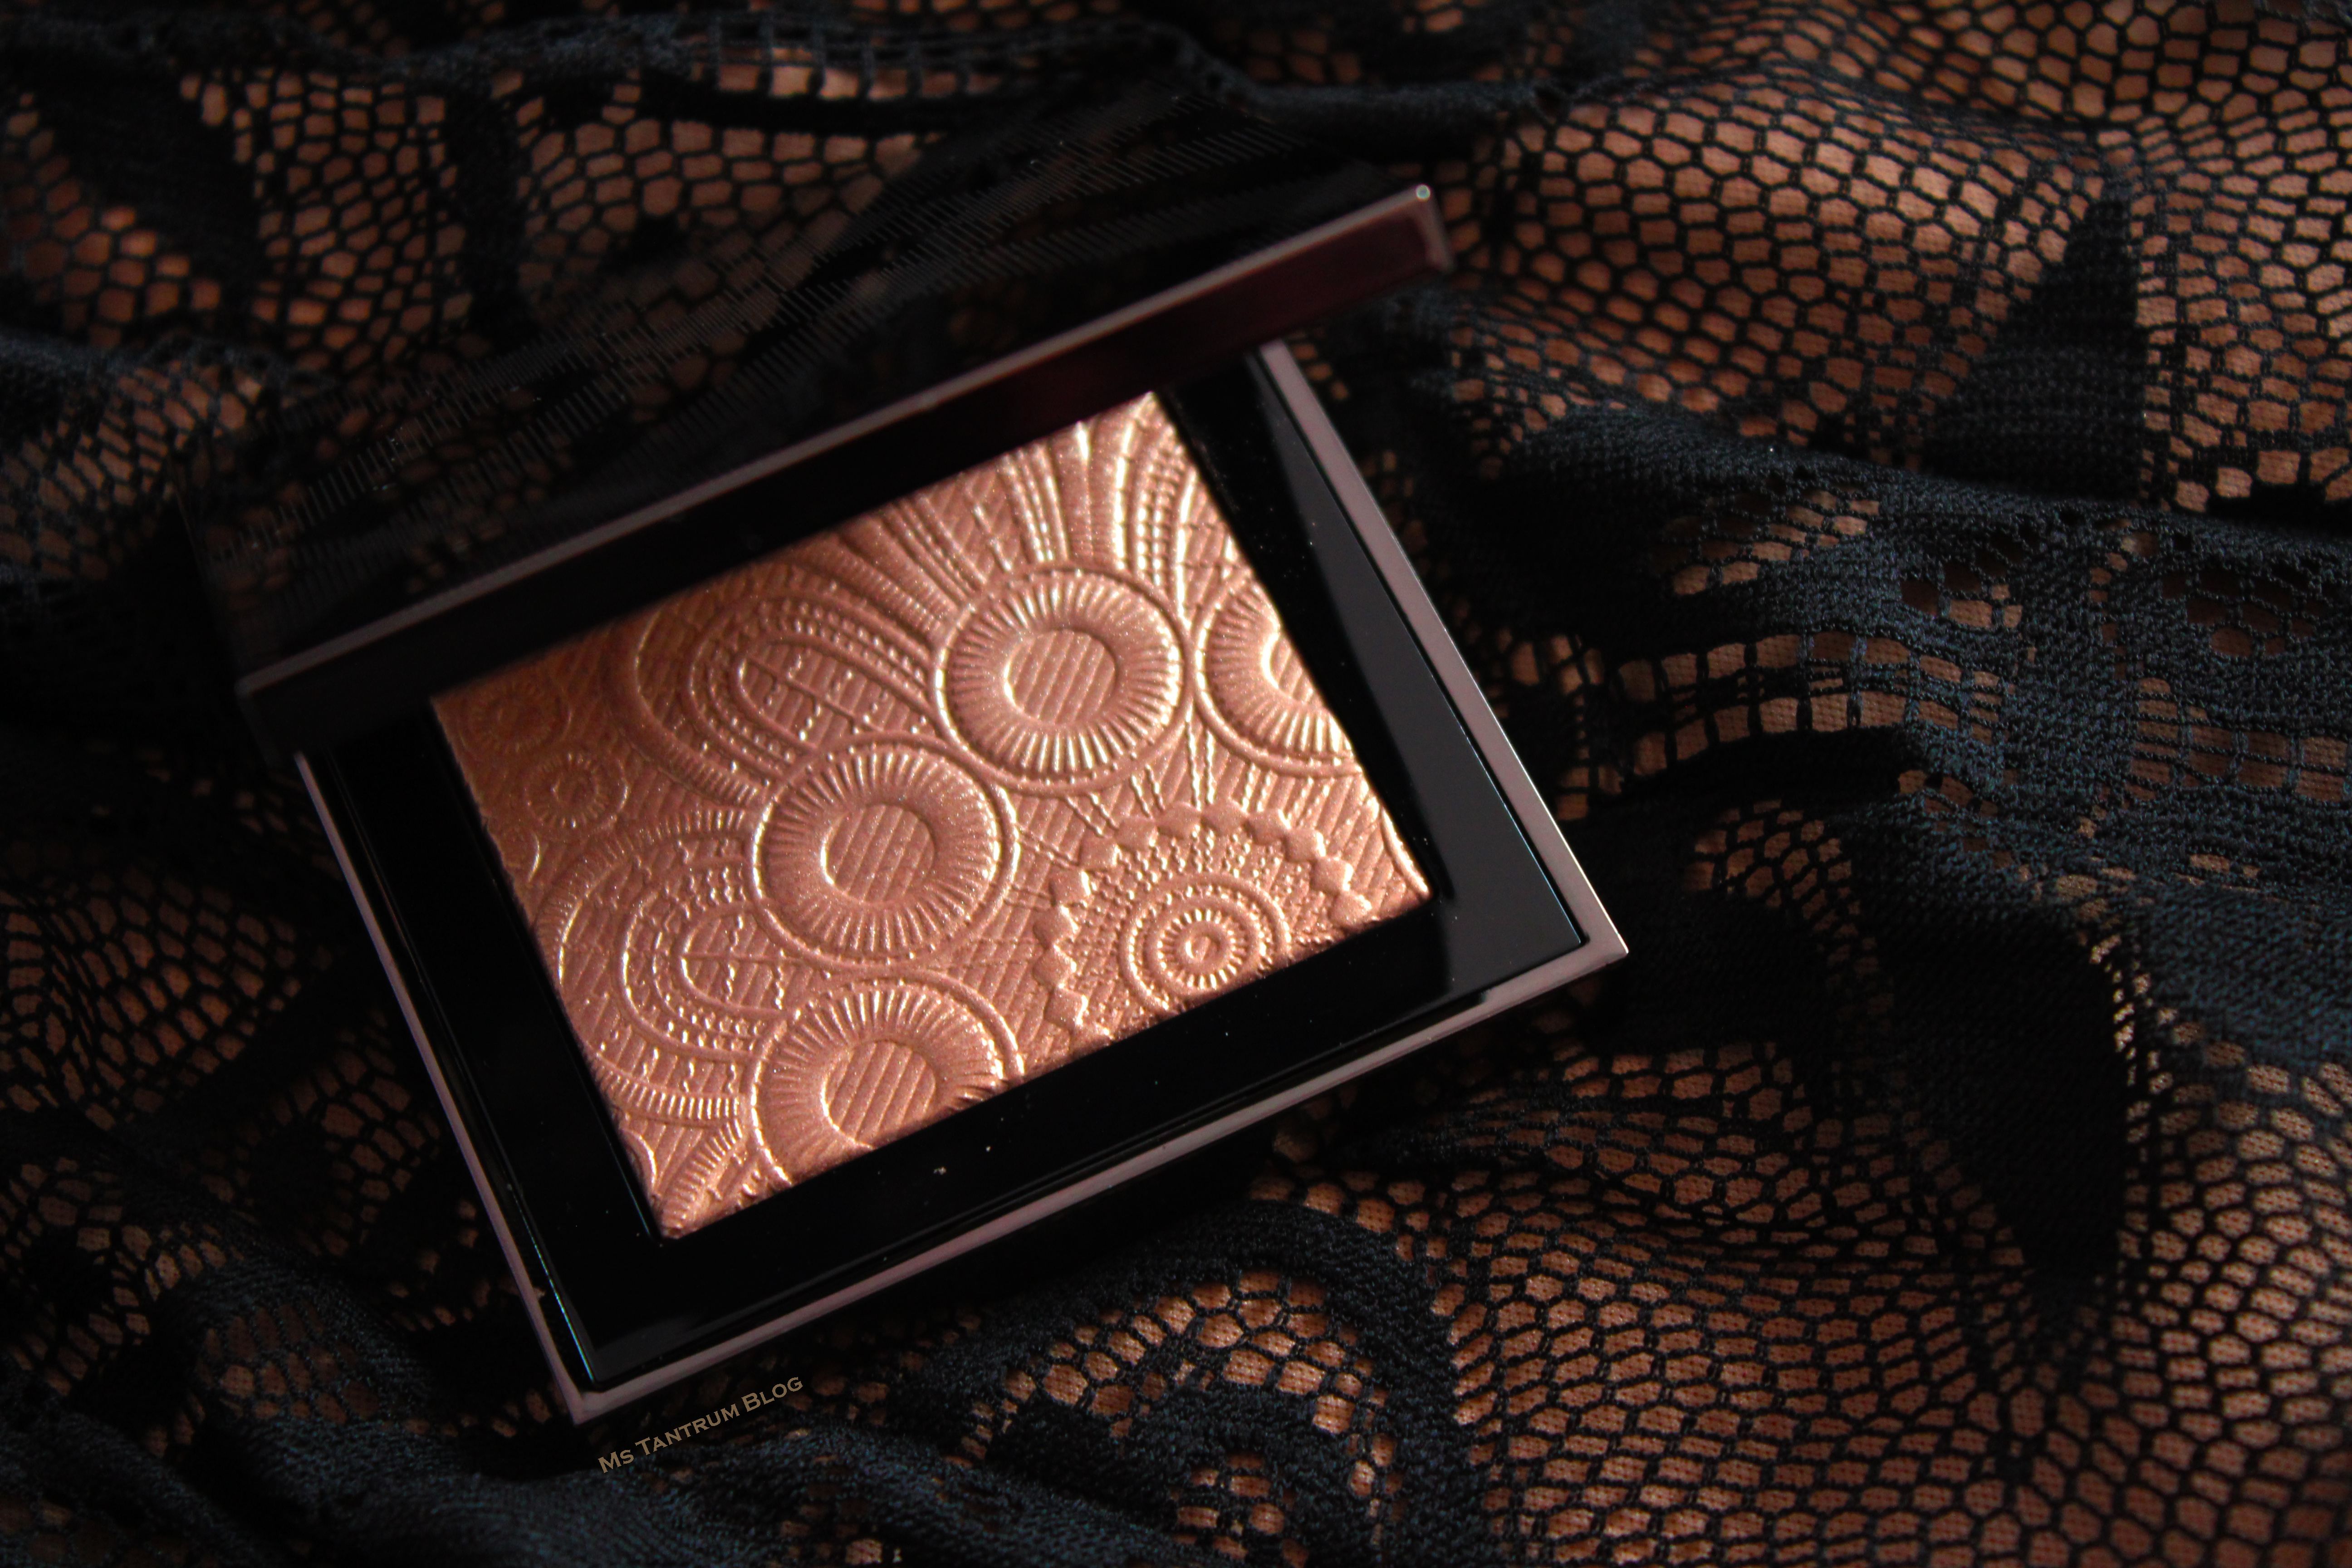 Burberry Lace Highlighter review on Ms Tantrum Blog